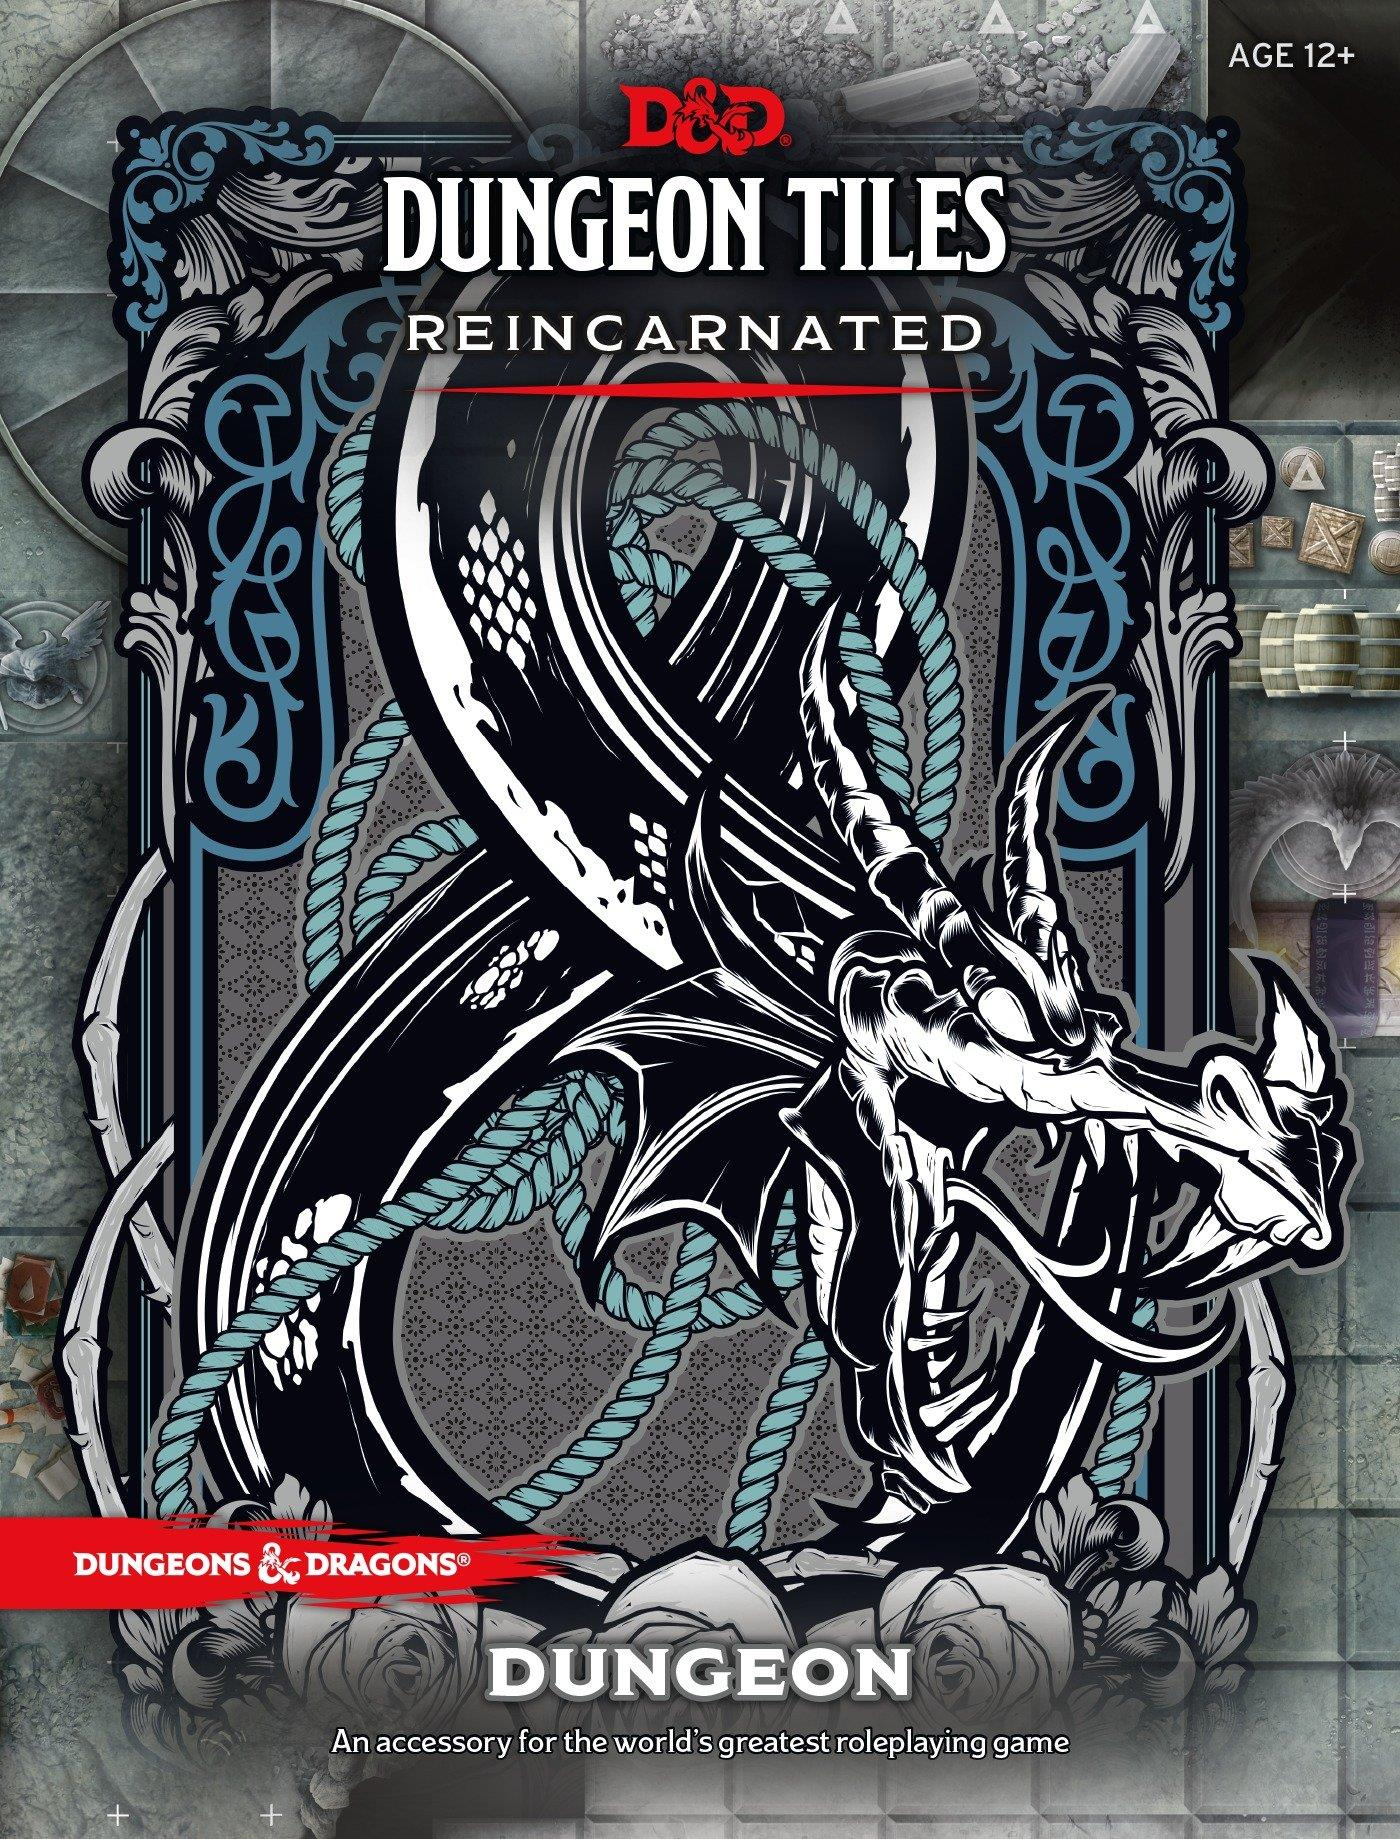 DUNGEONS AND DRAGONS DUNGEON TILES REINCARNATED DUNGEON WOCC491